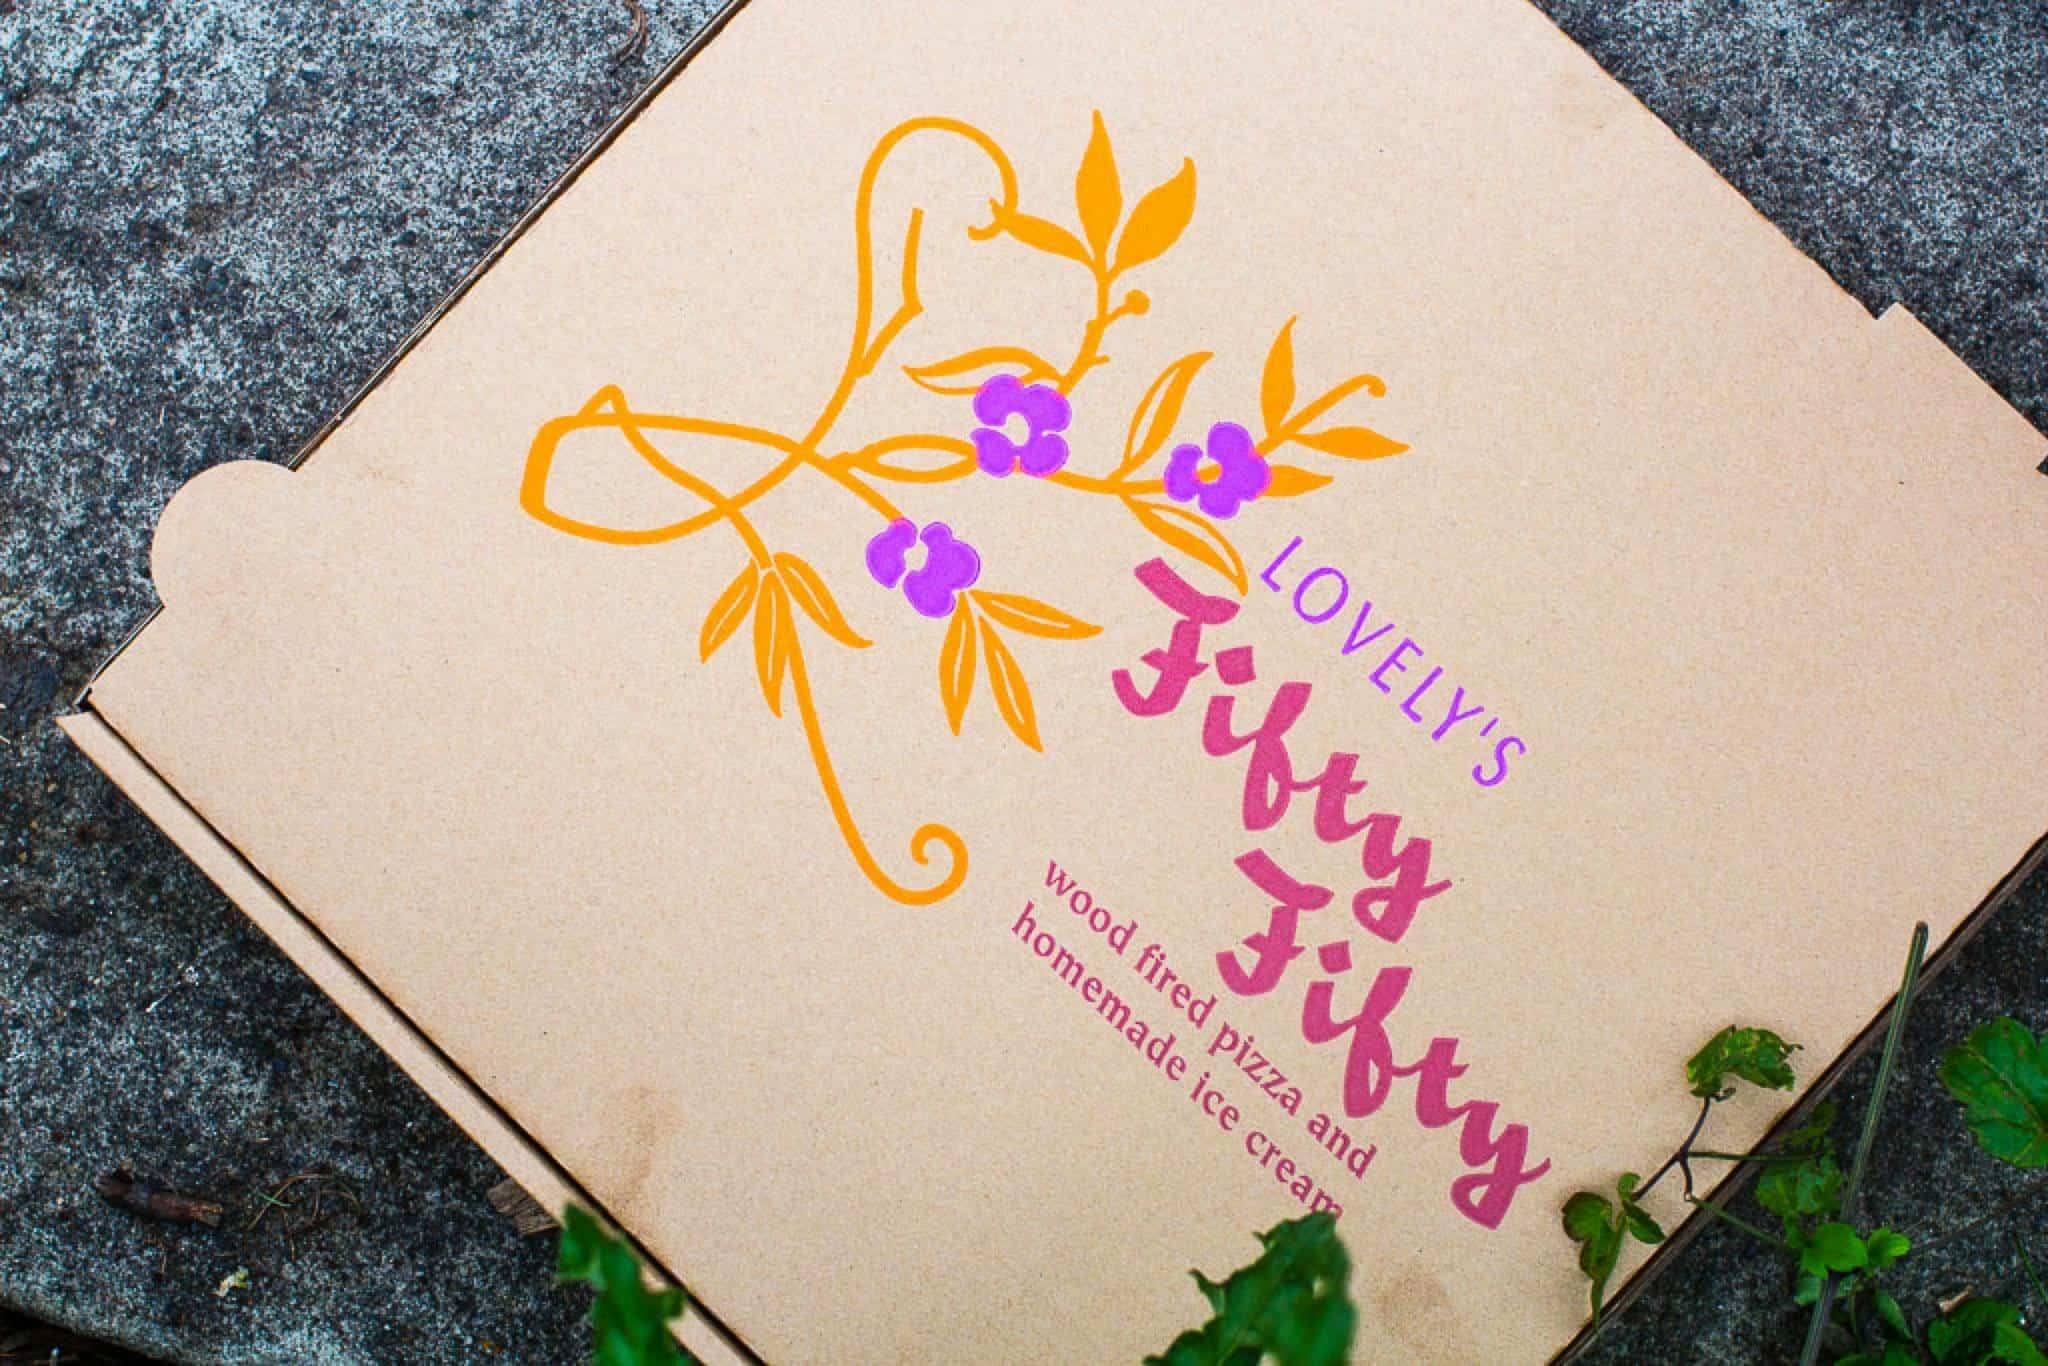 pizza box from lovely's fifty fifty in Portland